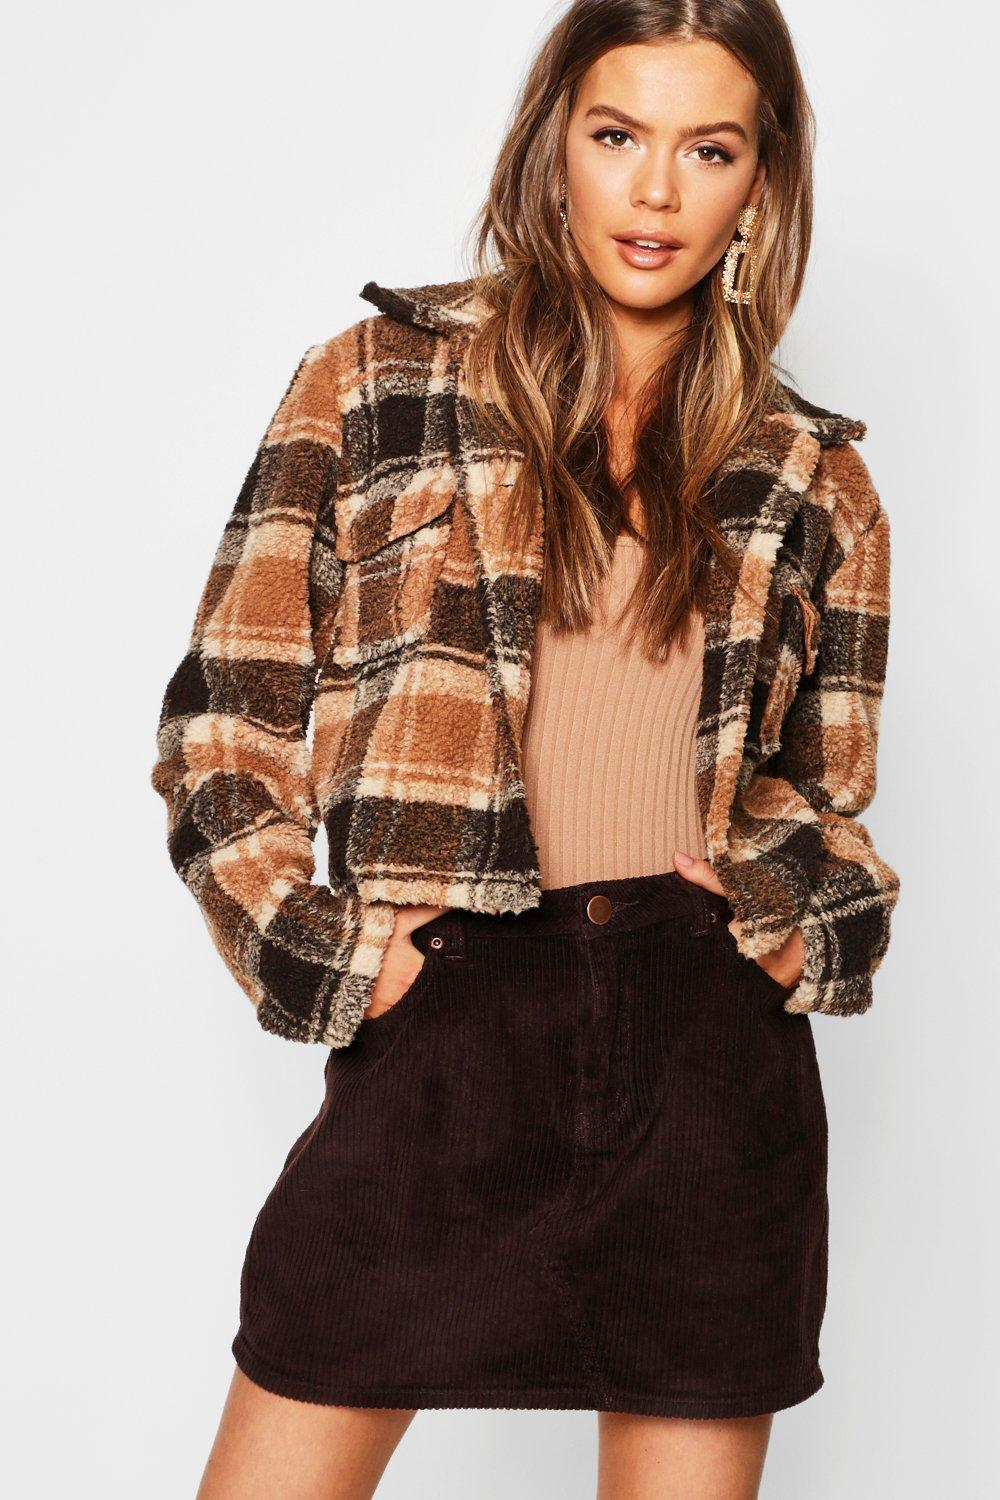 discount for sale modern techniques hot-selling genuine Check Teddy Faux Fur Trucker Jacket | Boohoo